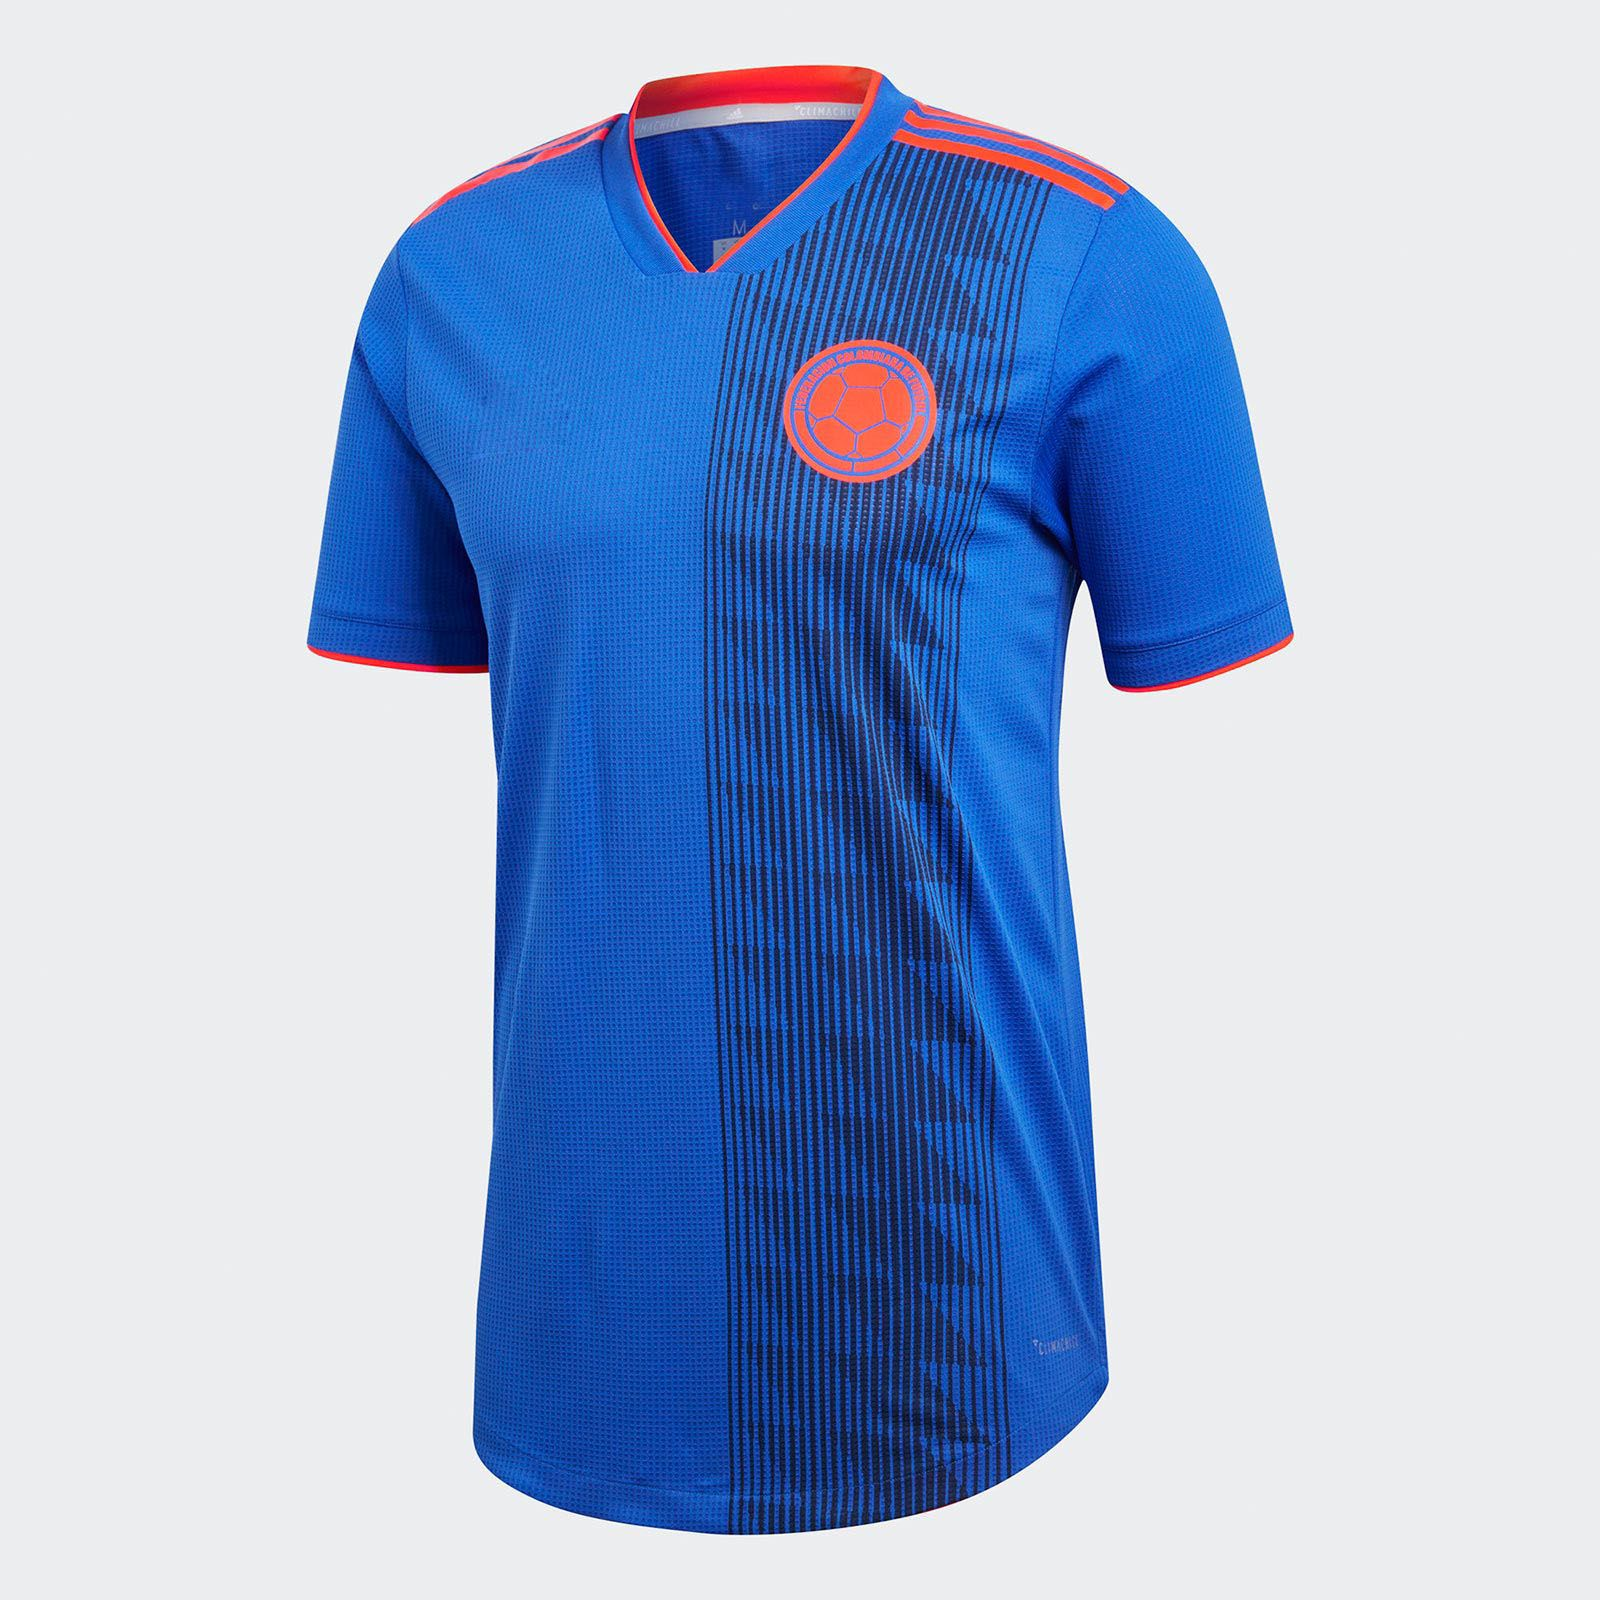 302a766014 2018 Colombia World Cup Away Jersey Kit